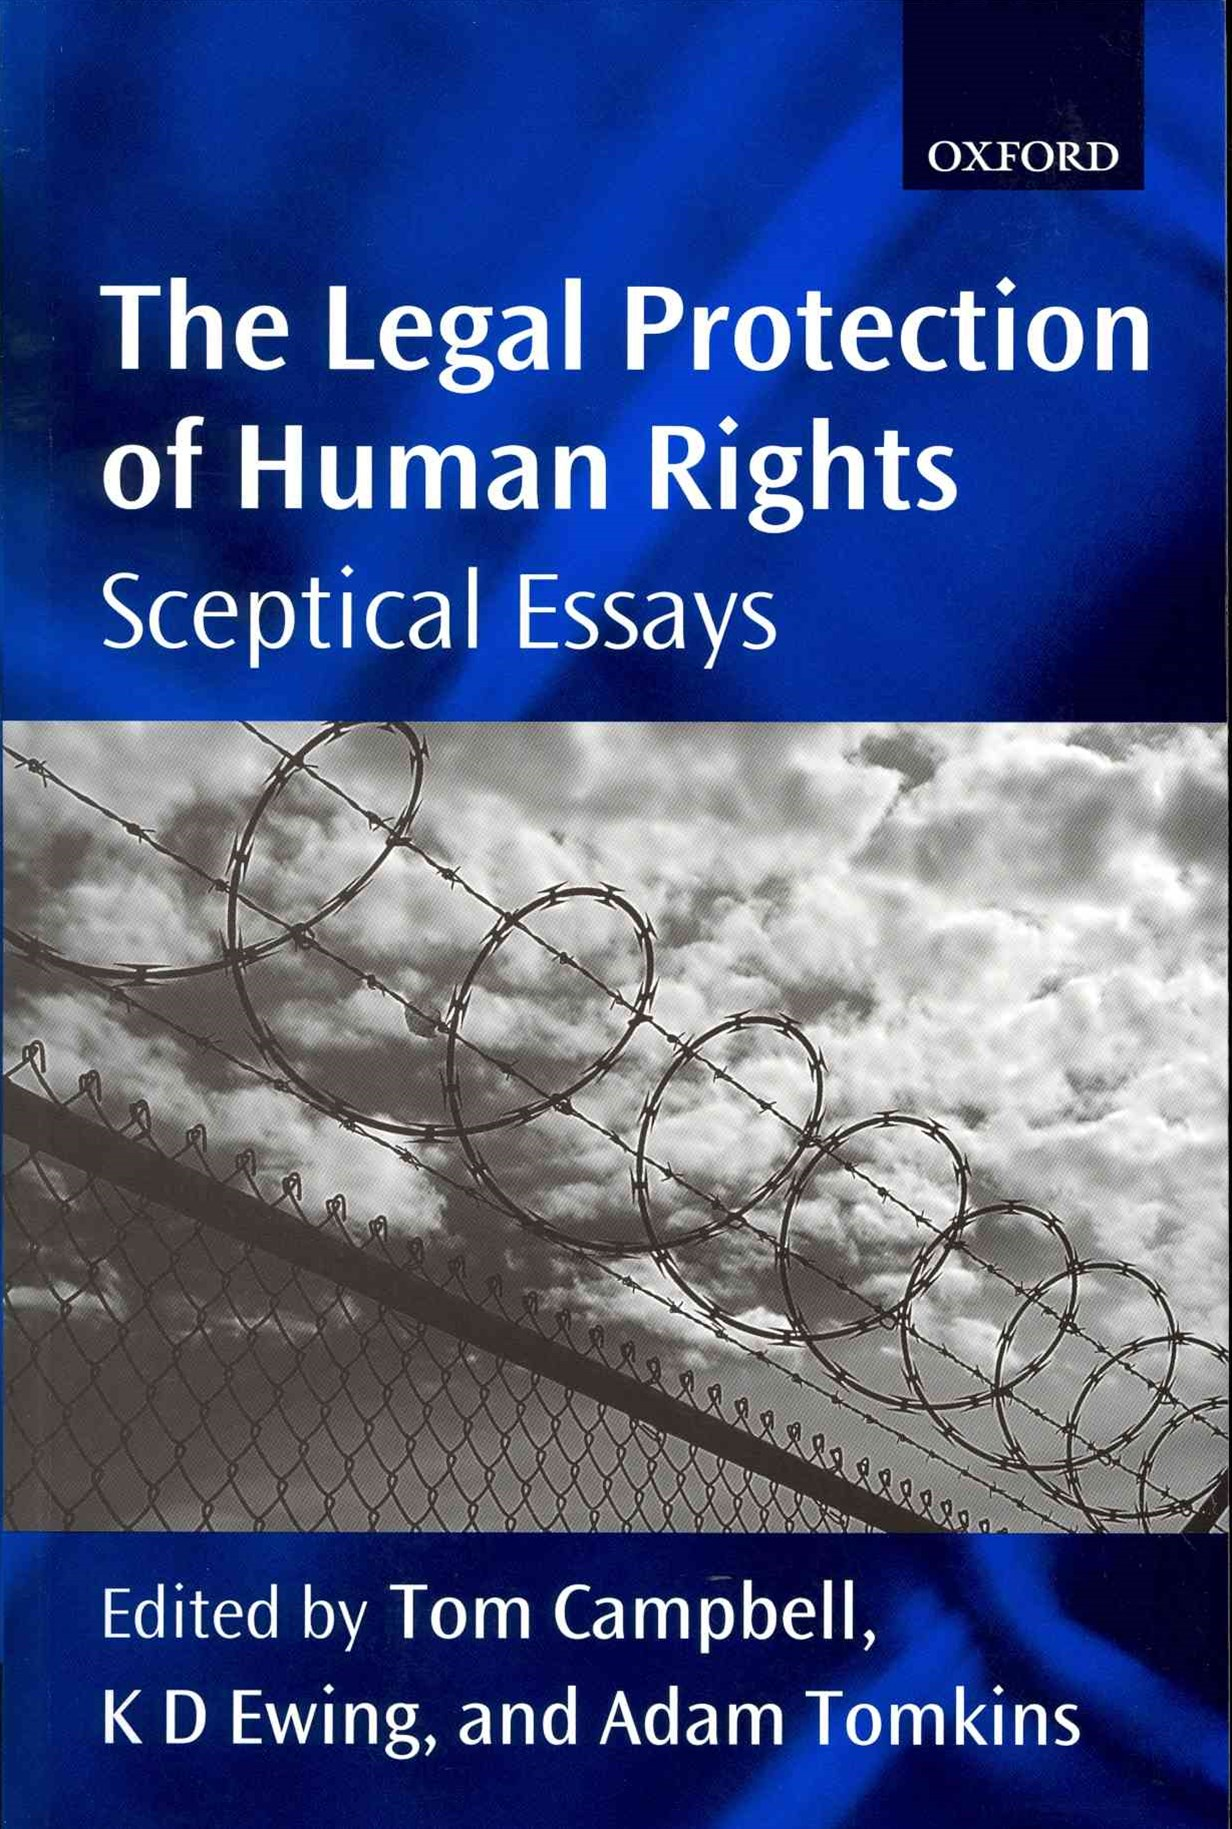 The Legal Protection of Human Rights